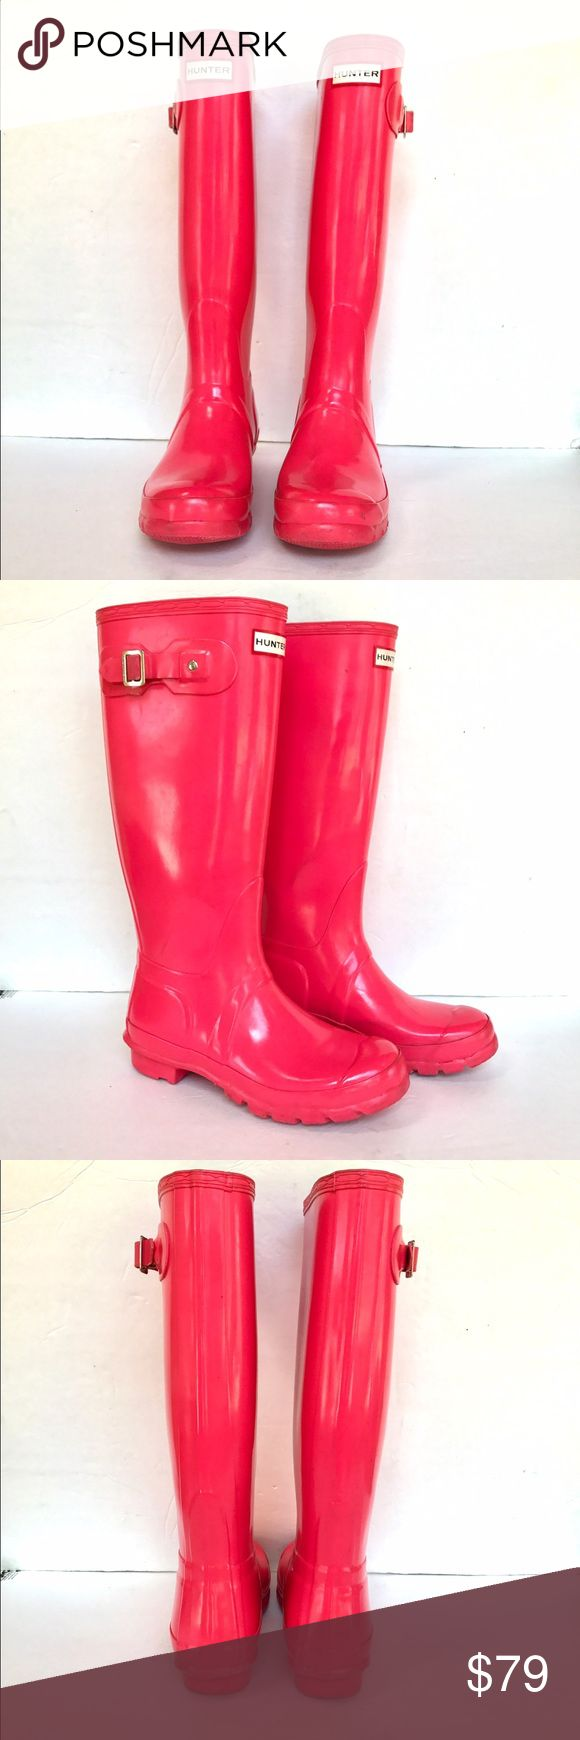 Hunter boots hot pink size 7 Hunter boots. Hot pink. Women's size 7. Normal scuffs here and there but overall very good condition. Hunter Boots Shoes Winter & Rain Boots